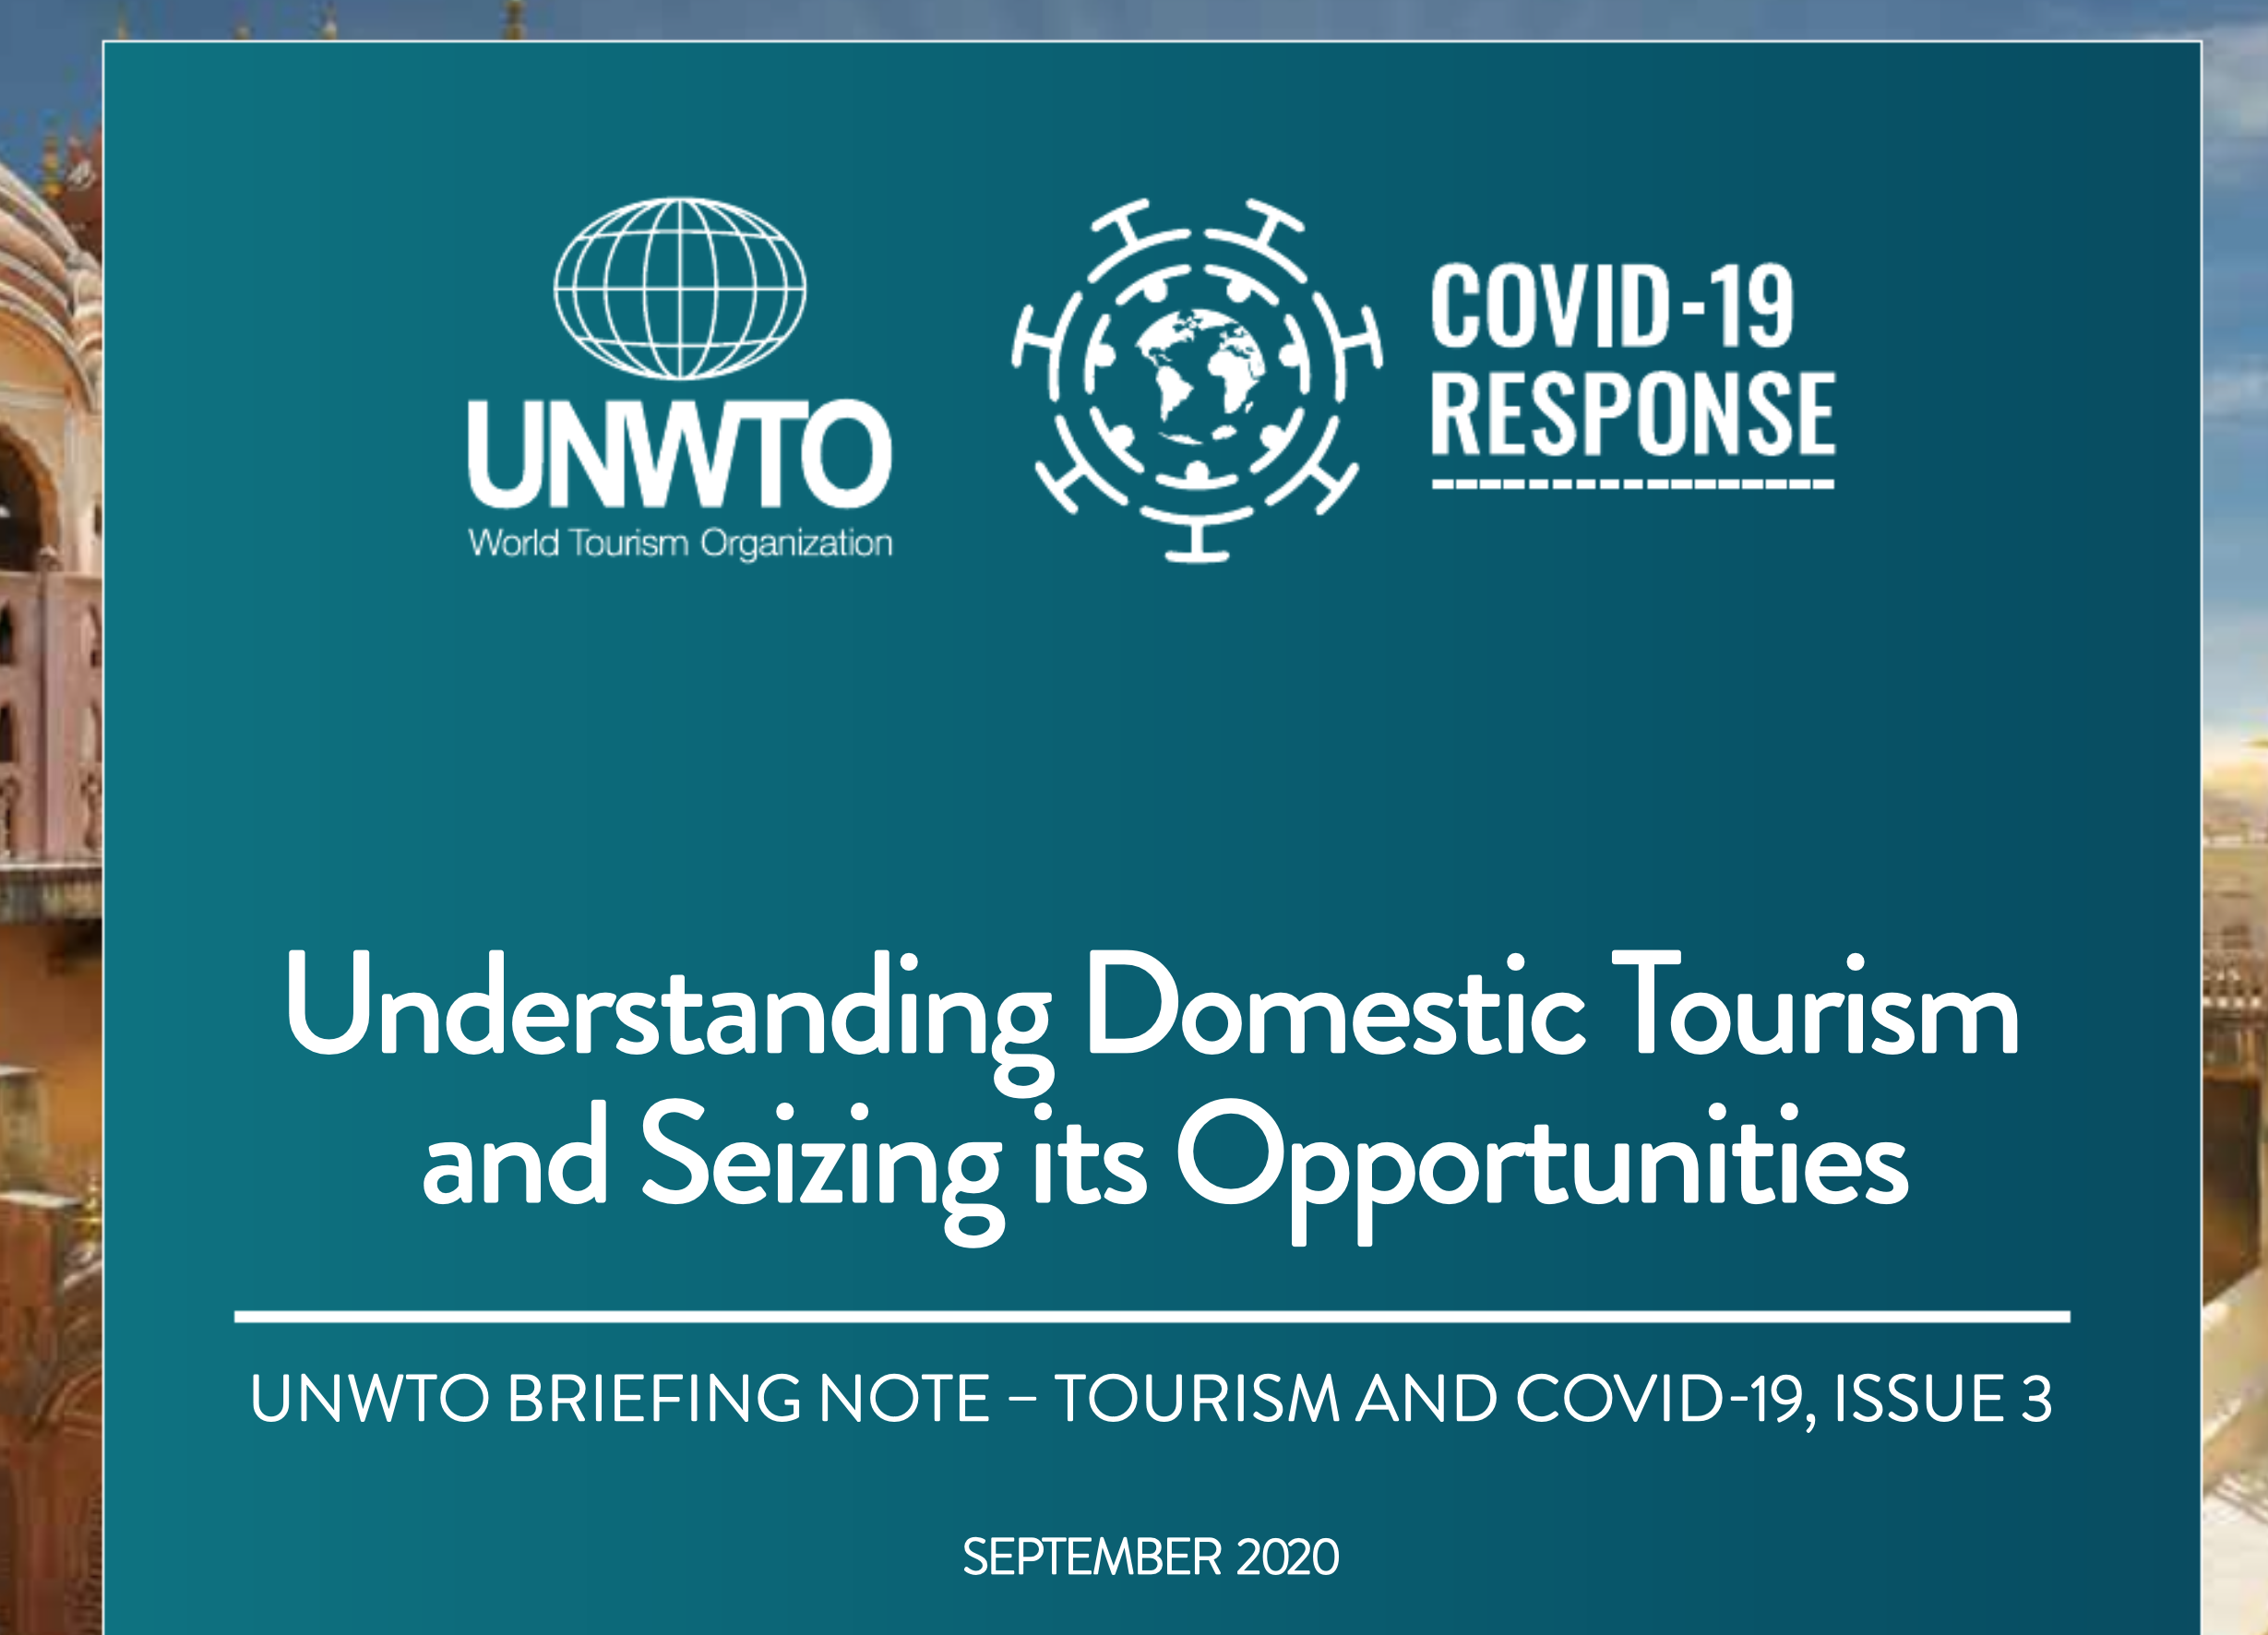 UNWTO Highlights Potential of Domestic Tourism to help Drive Economic Recovery in Destinations Worldwide